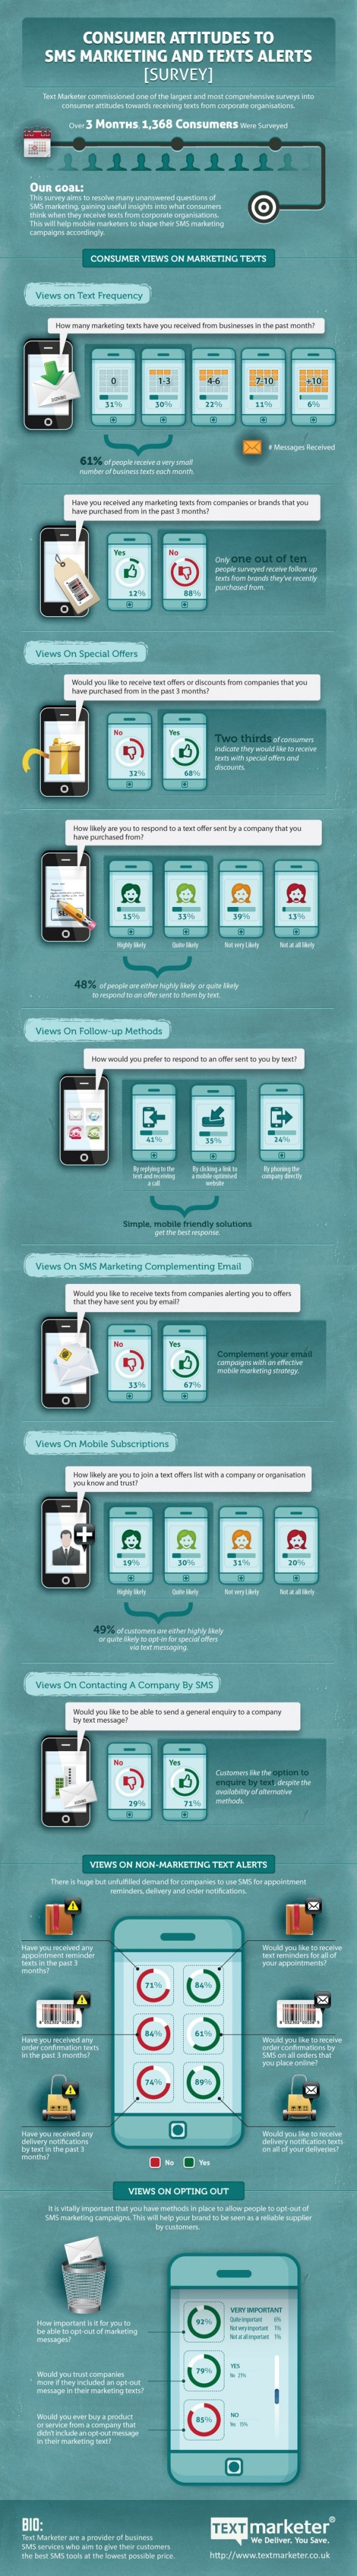 Consumer attitudes to sms marketing and texts alerts [infographic]